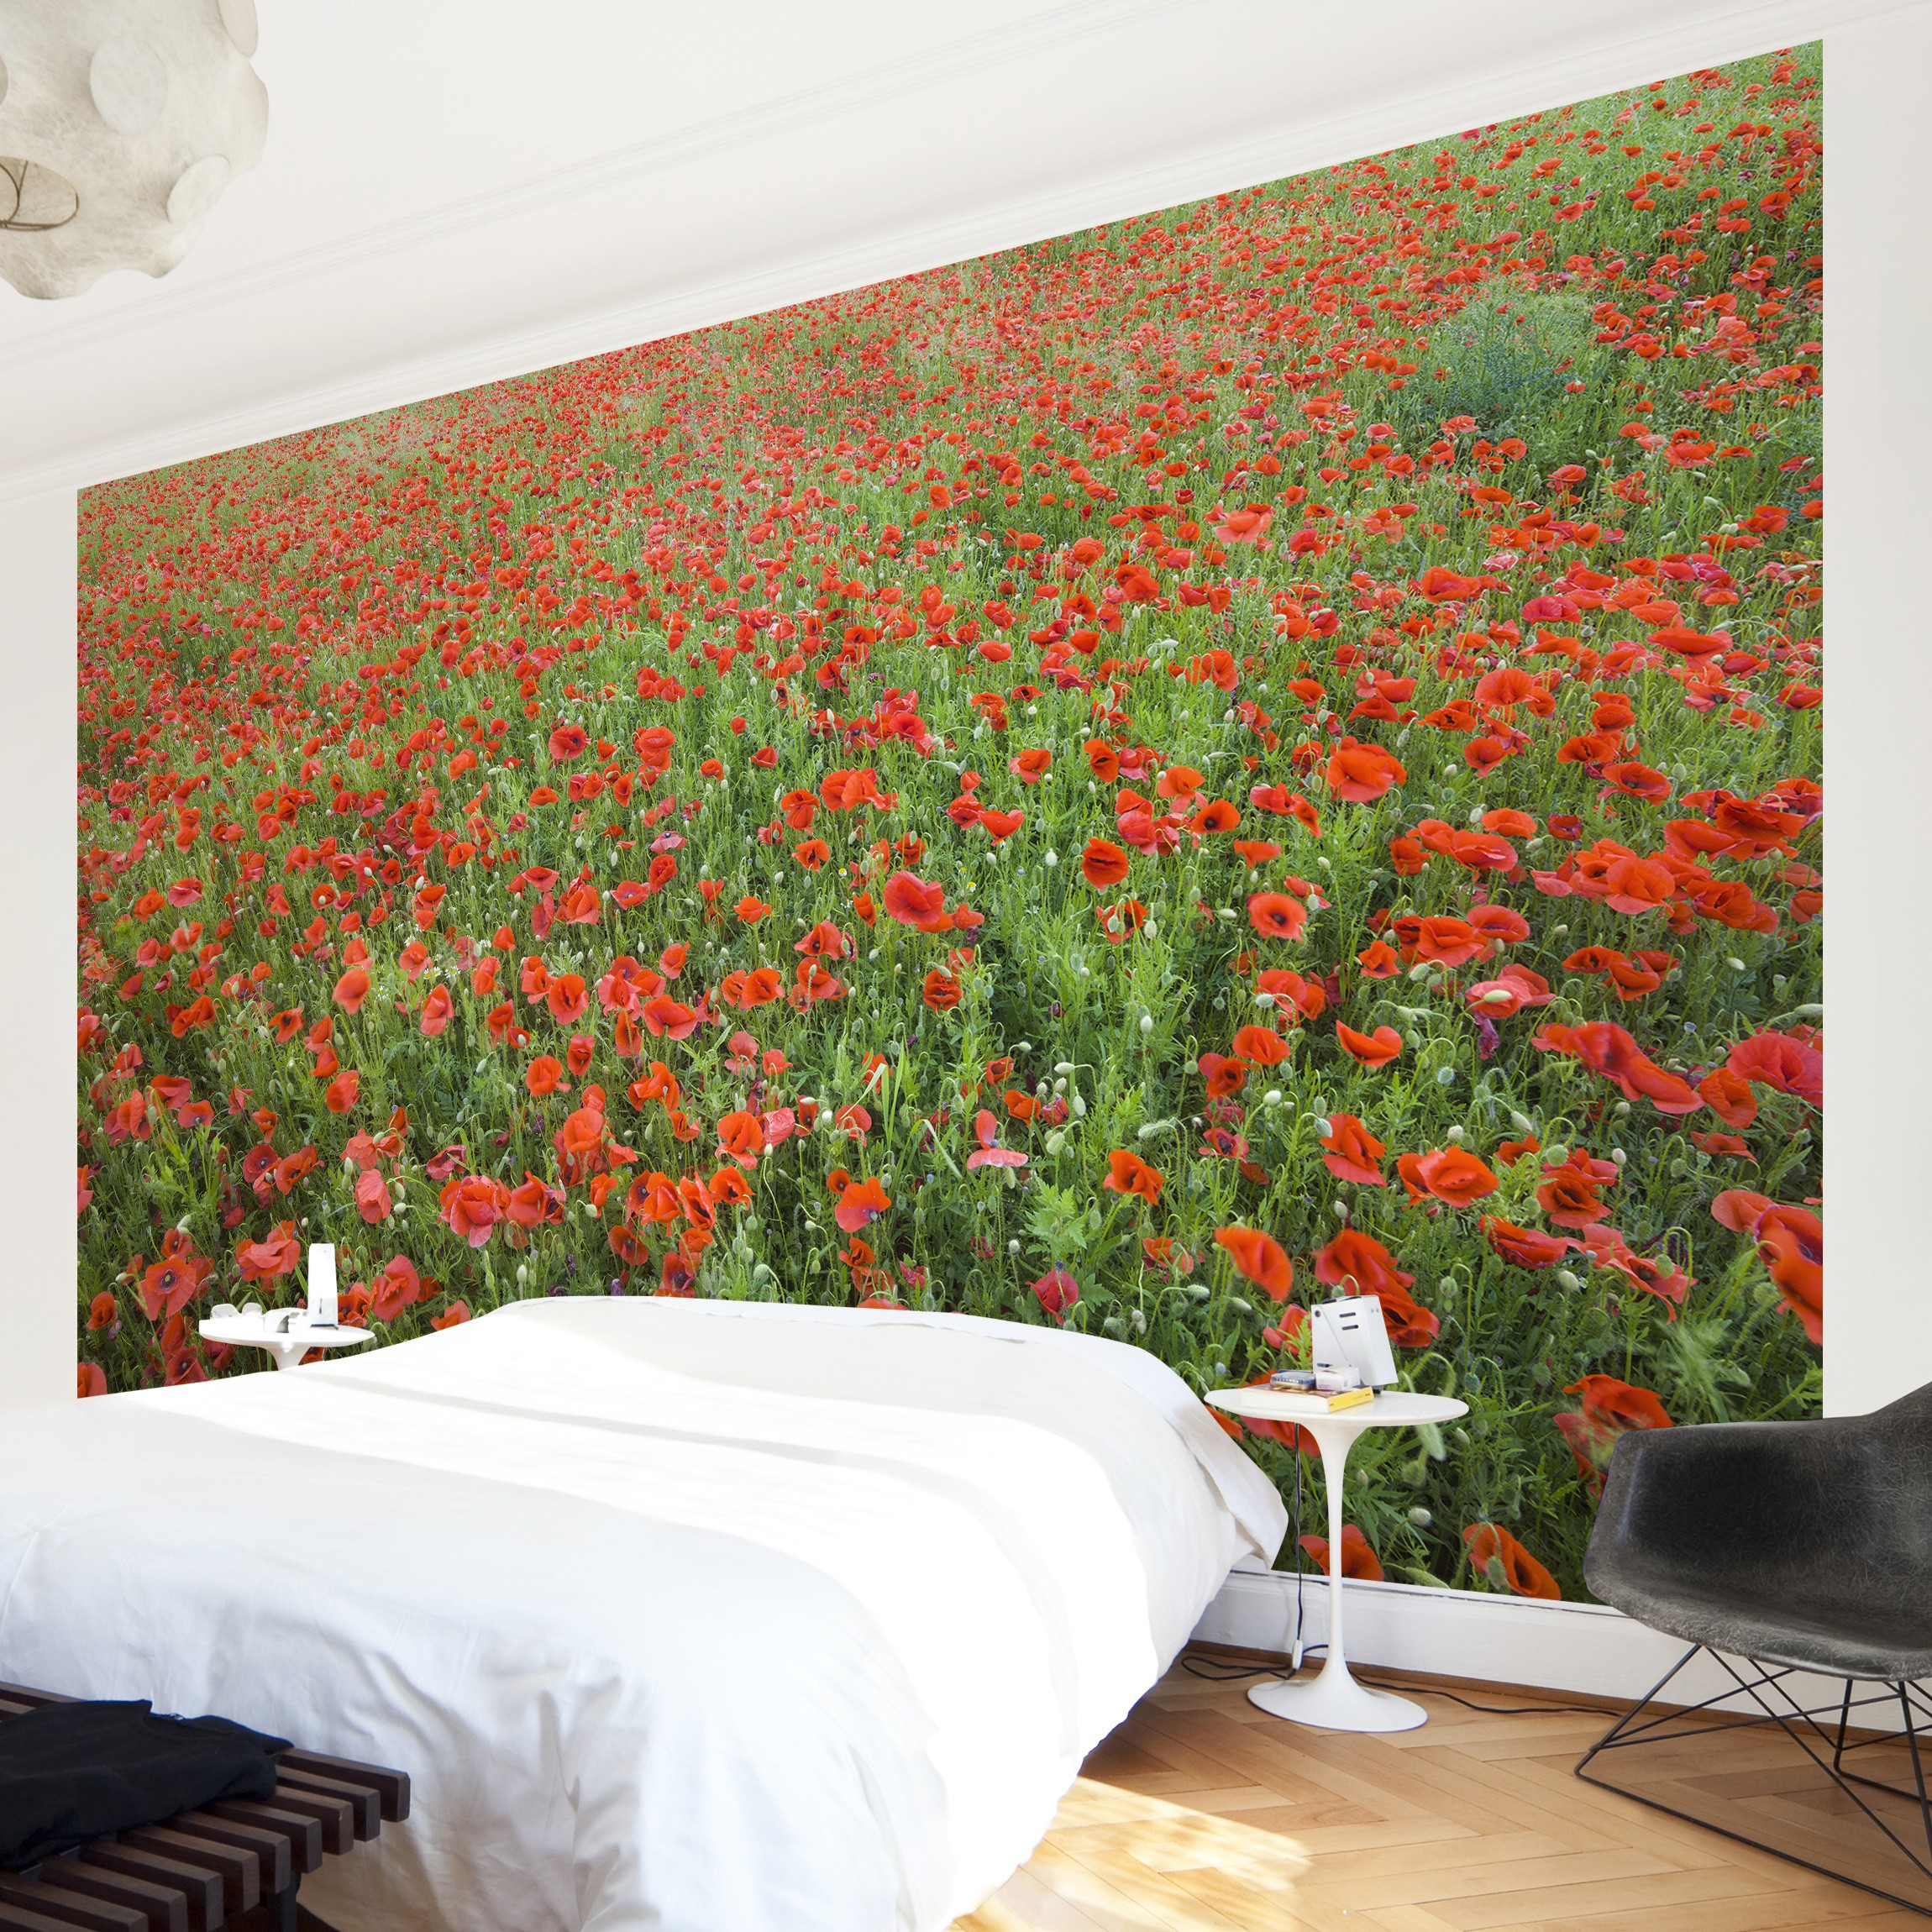 selbstklebende mohnblumen fototapete mohnblumenfeld. Black Bedroom Furniture Sets. Home Design Ideas